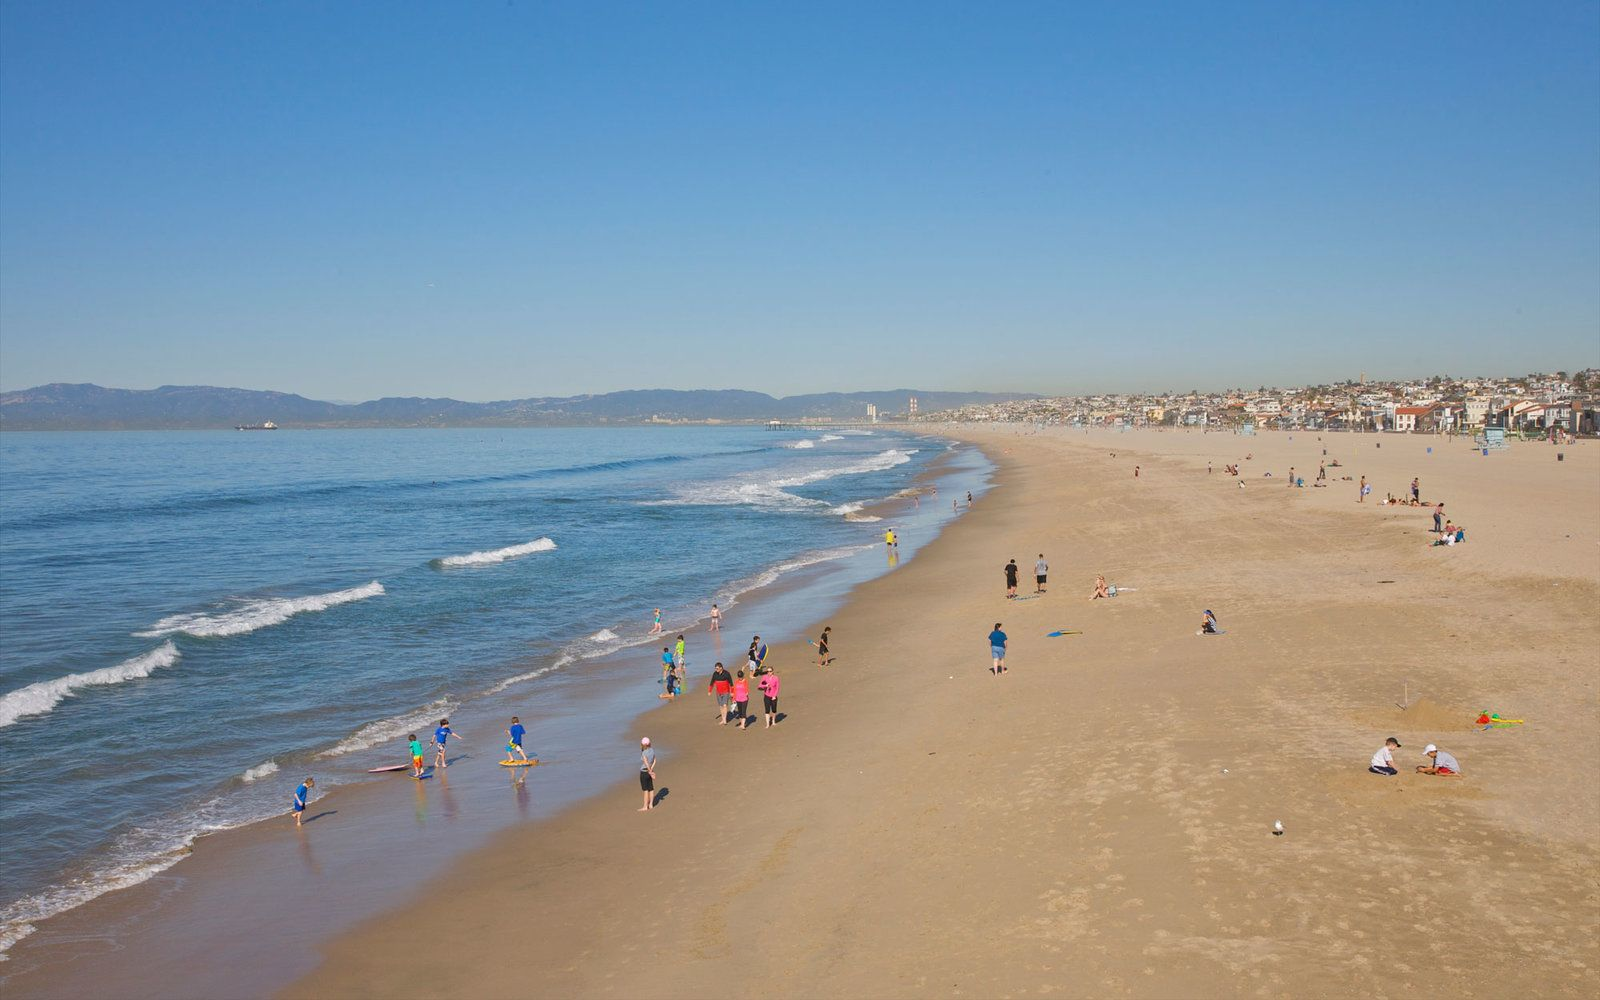 Best Beaches In California Beach Holidays For Couples Singles And Families Best California Beaches California Beach Beach Activities